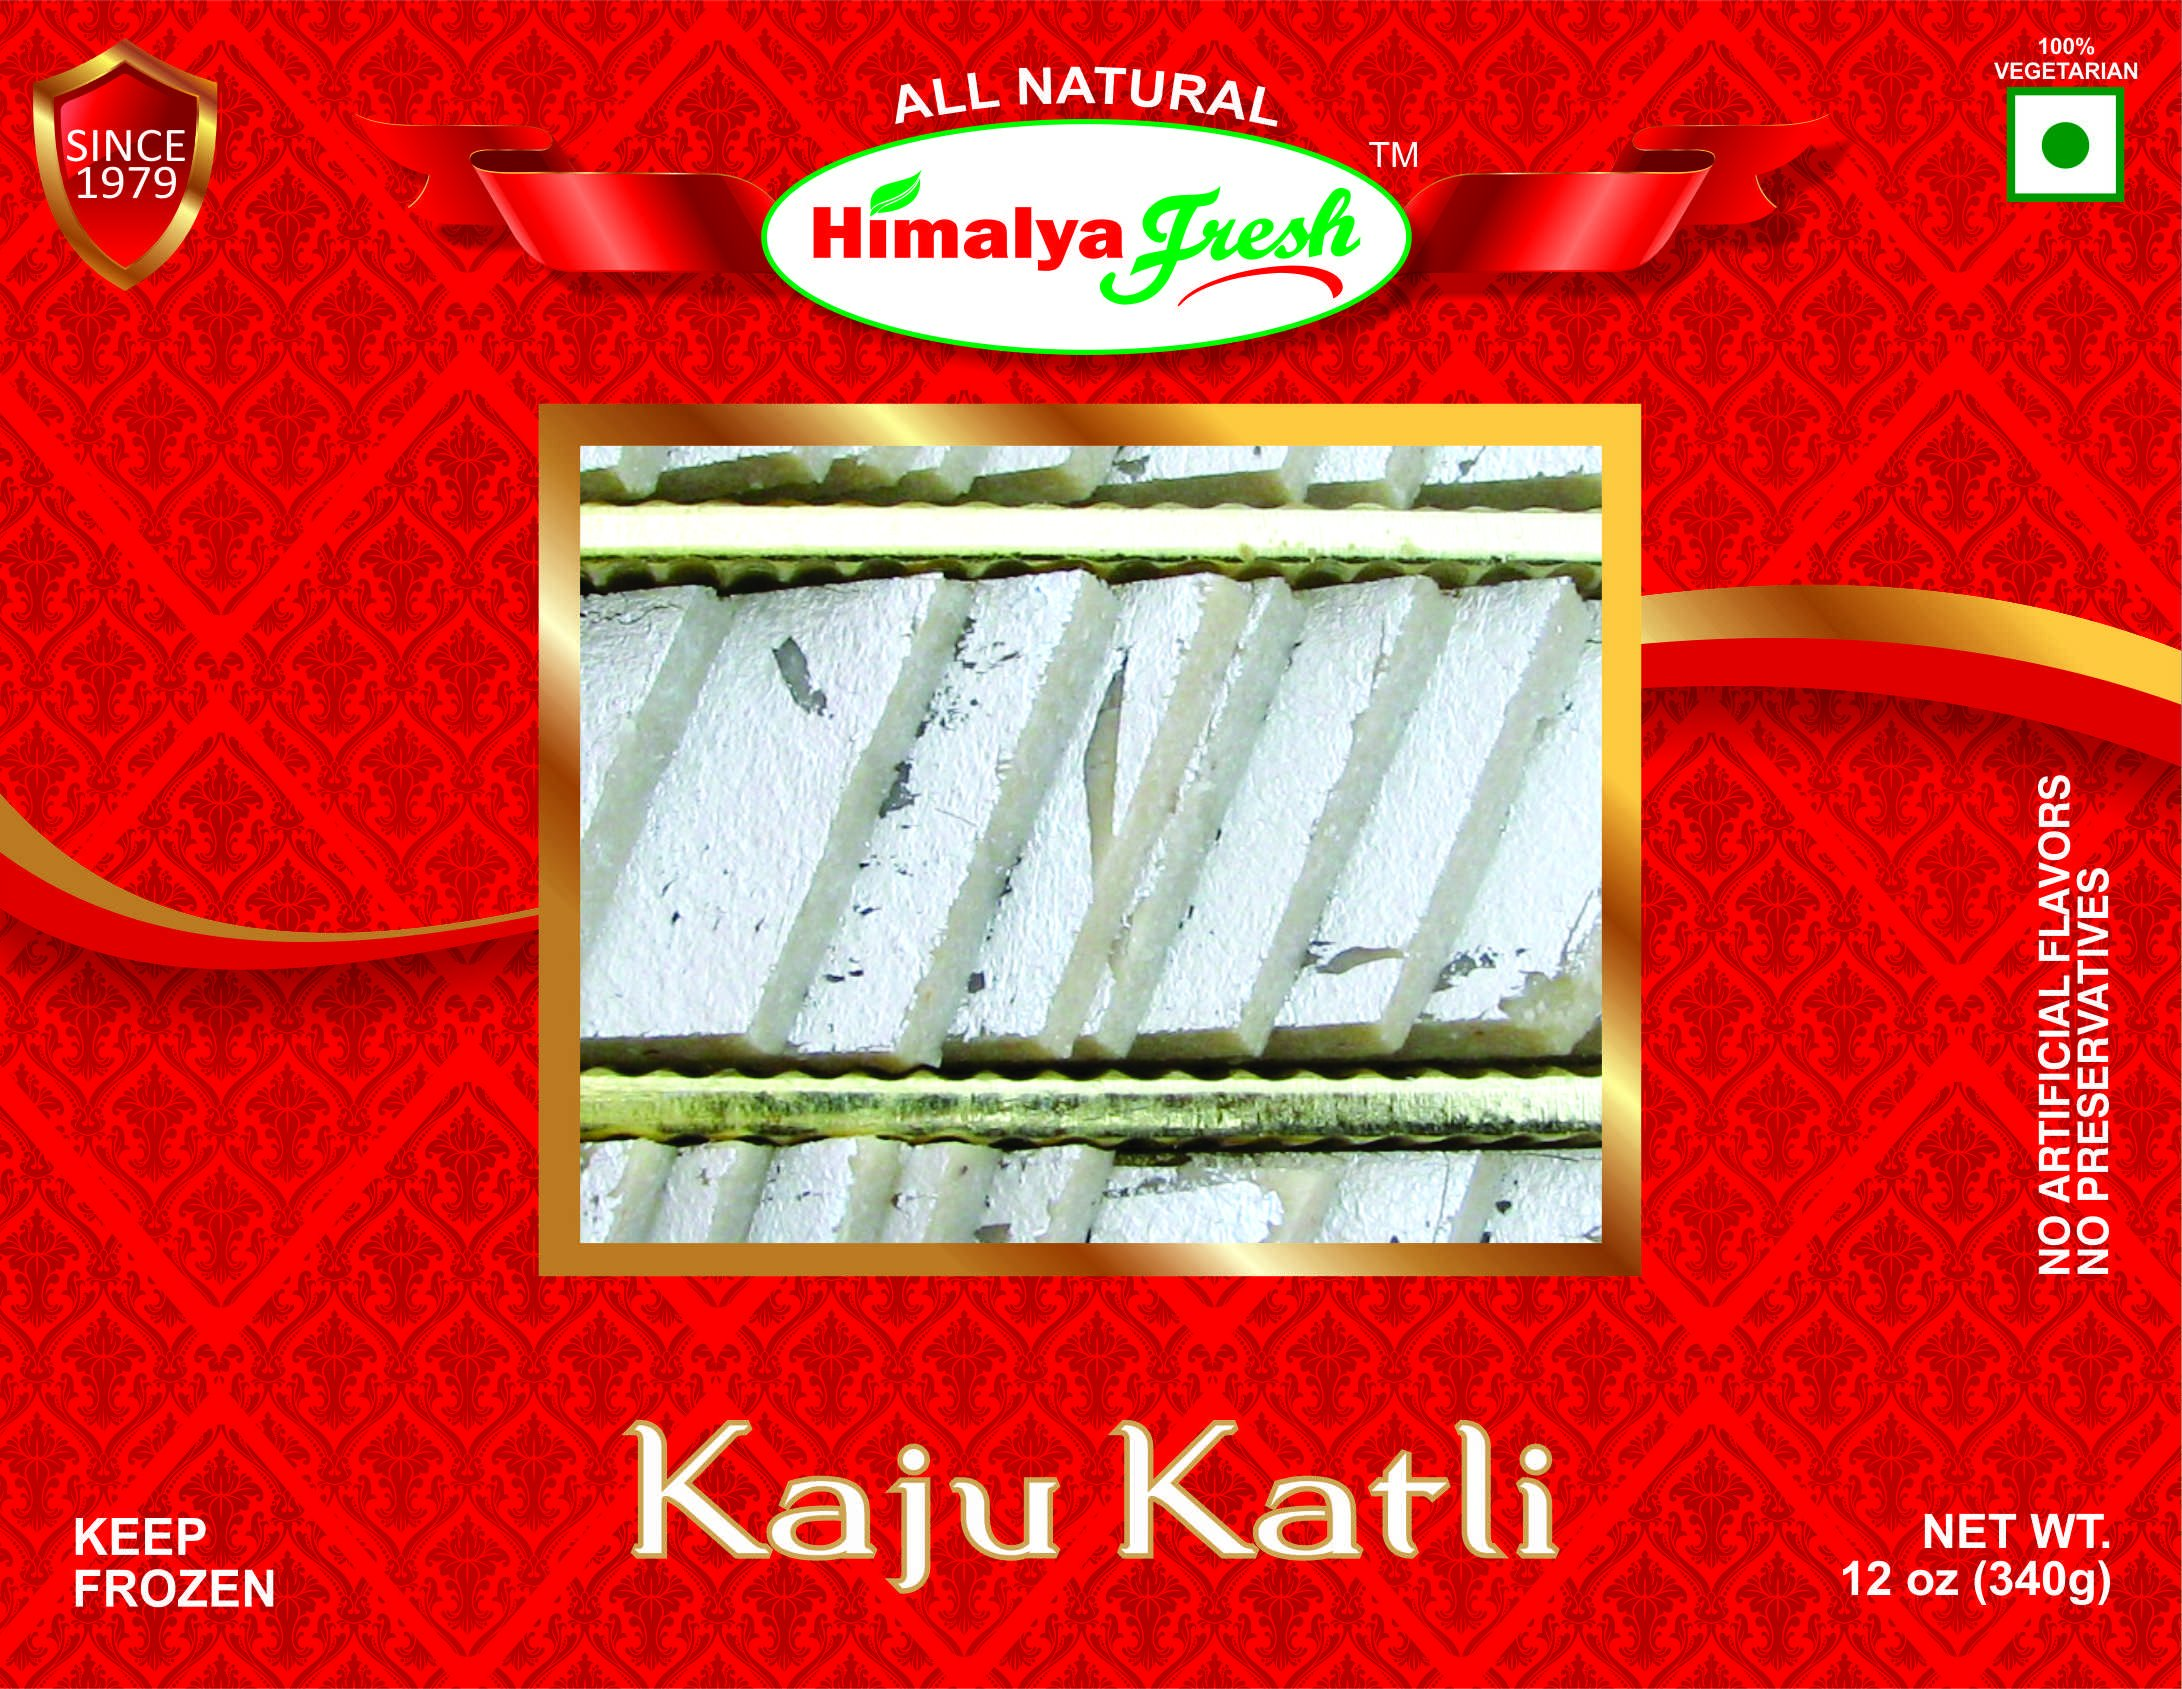 HIMALYA FRESH Kaju Katli 12oz - Premium Authentic Indian Food & Sweets Made With Cashew Nuts. Just two ingredients Cashew Nuts and sugar - No Fillers Or Preservatives (1 Box) by Himalya Fresh